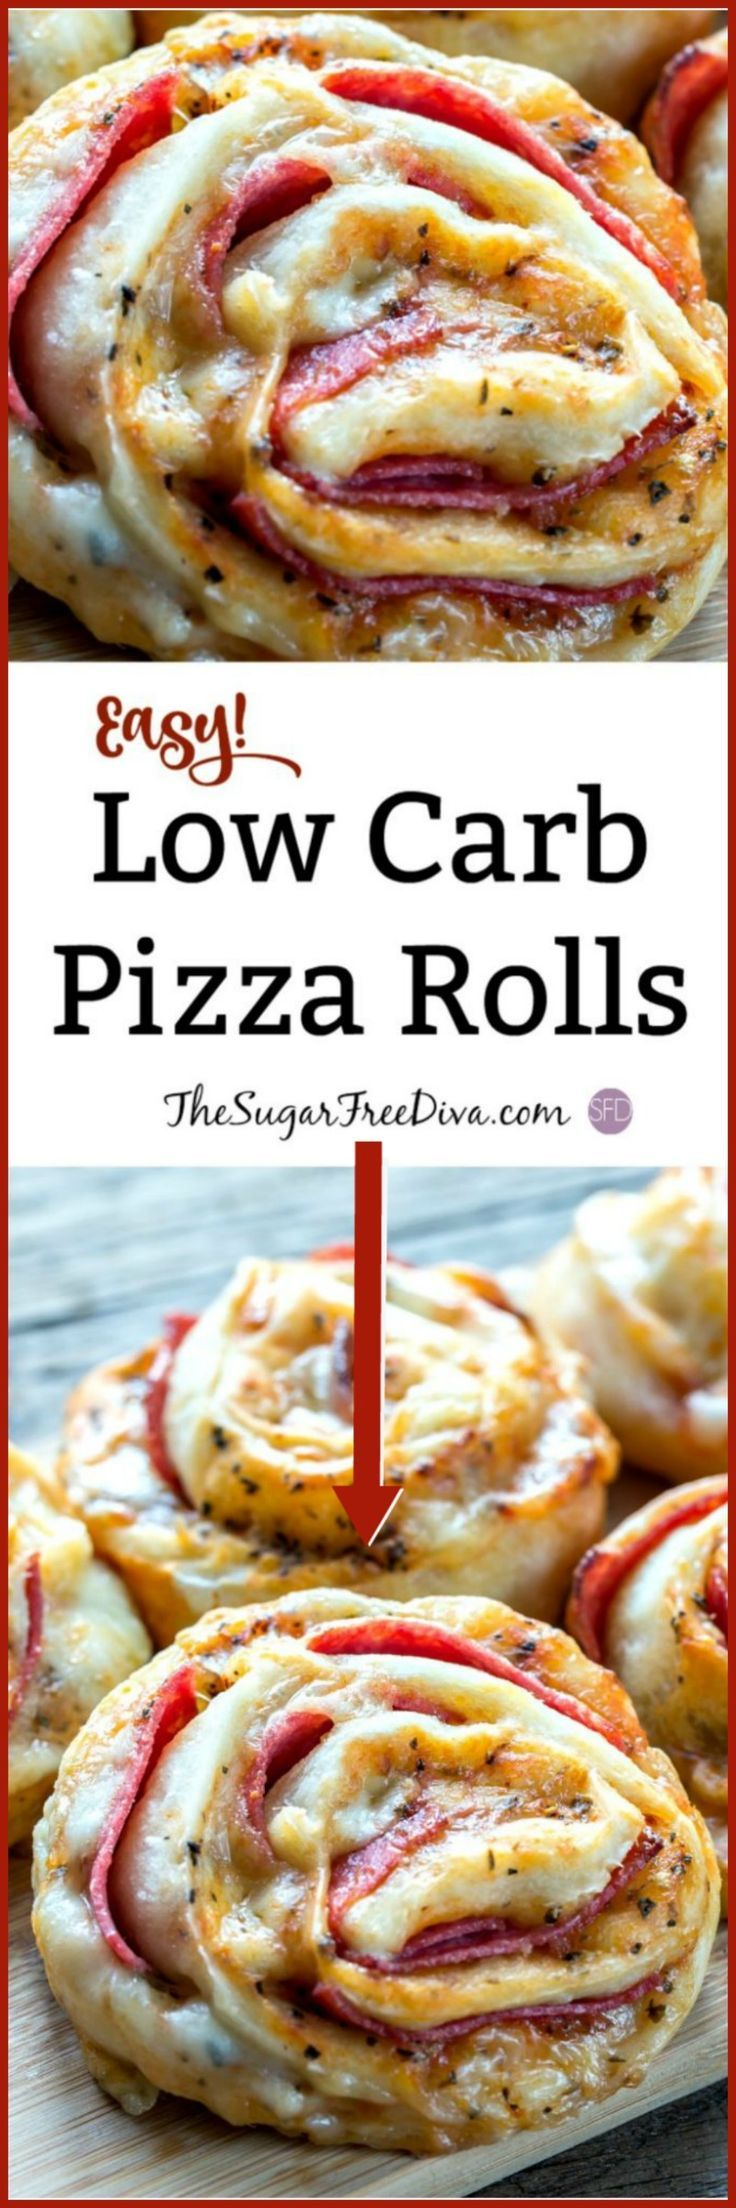 YUM!! Pizza Rolls! And this recipe is low carb too!